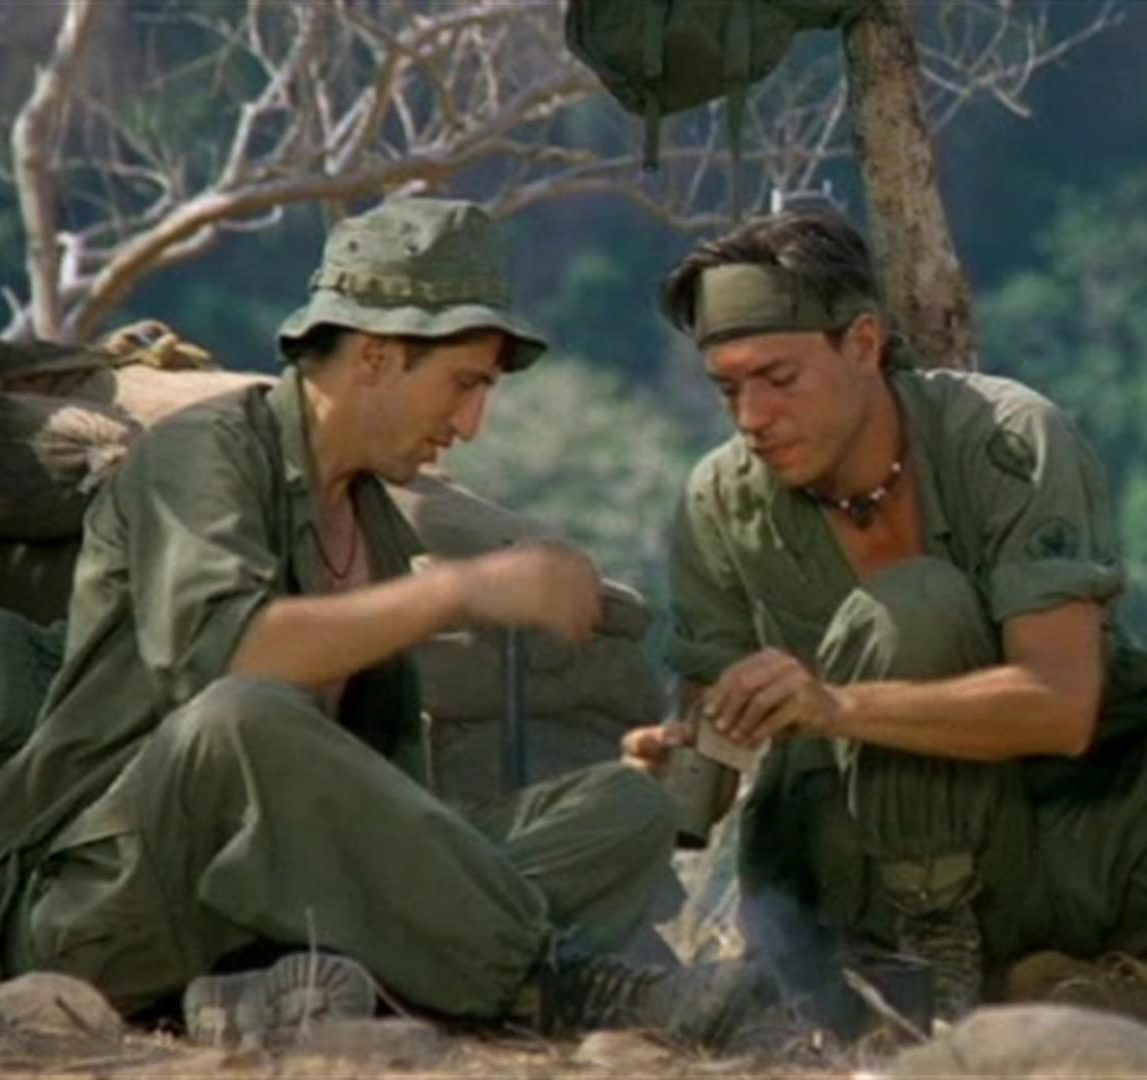 1 54 e1606915332533 30 Things You Probably Didn't Know About Platoon